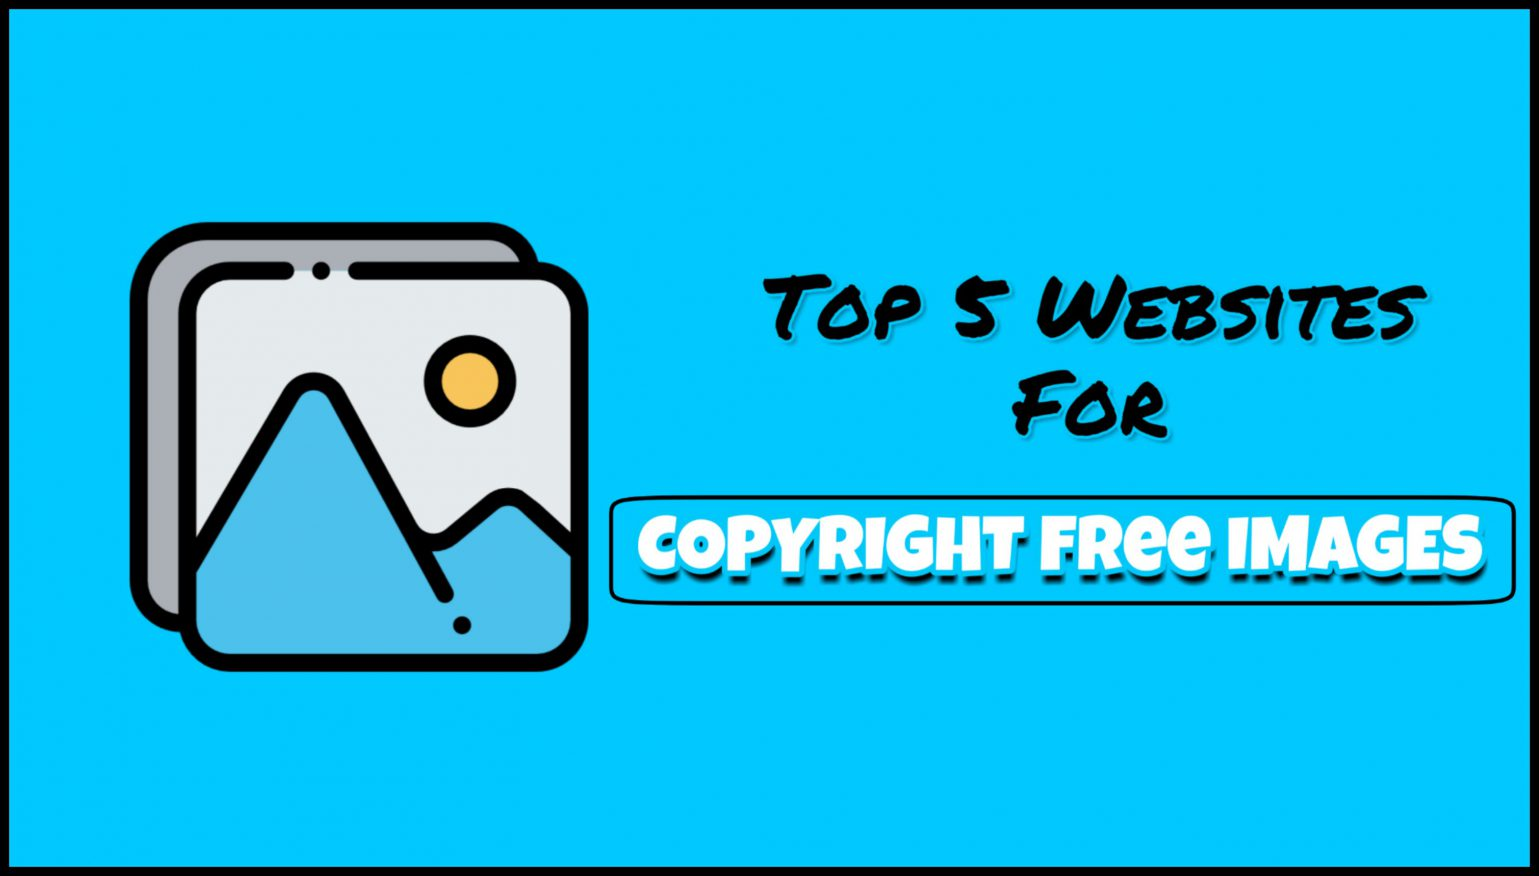 Copyright-free-images